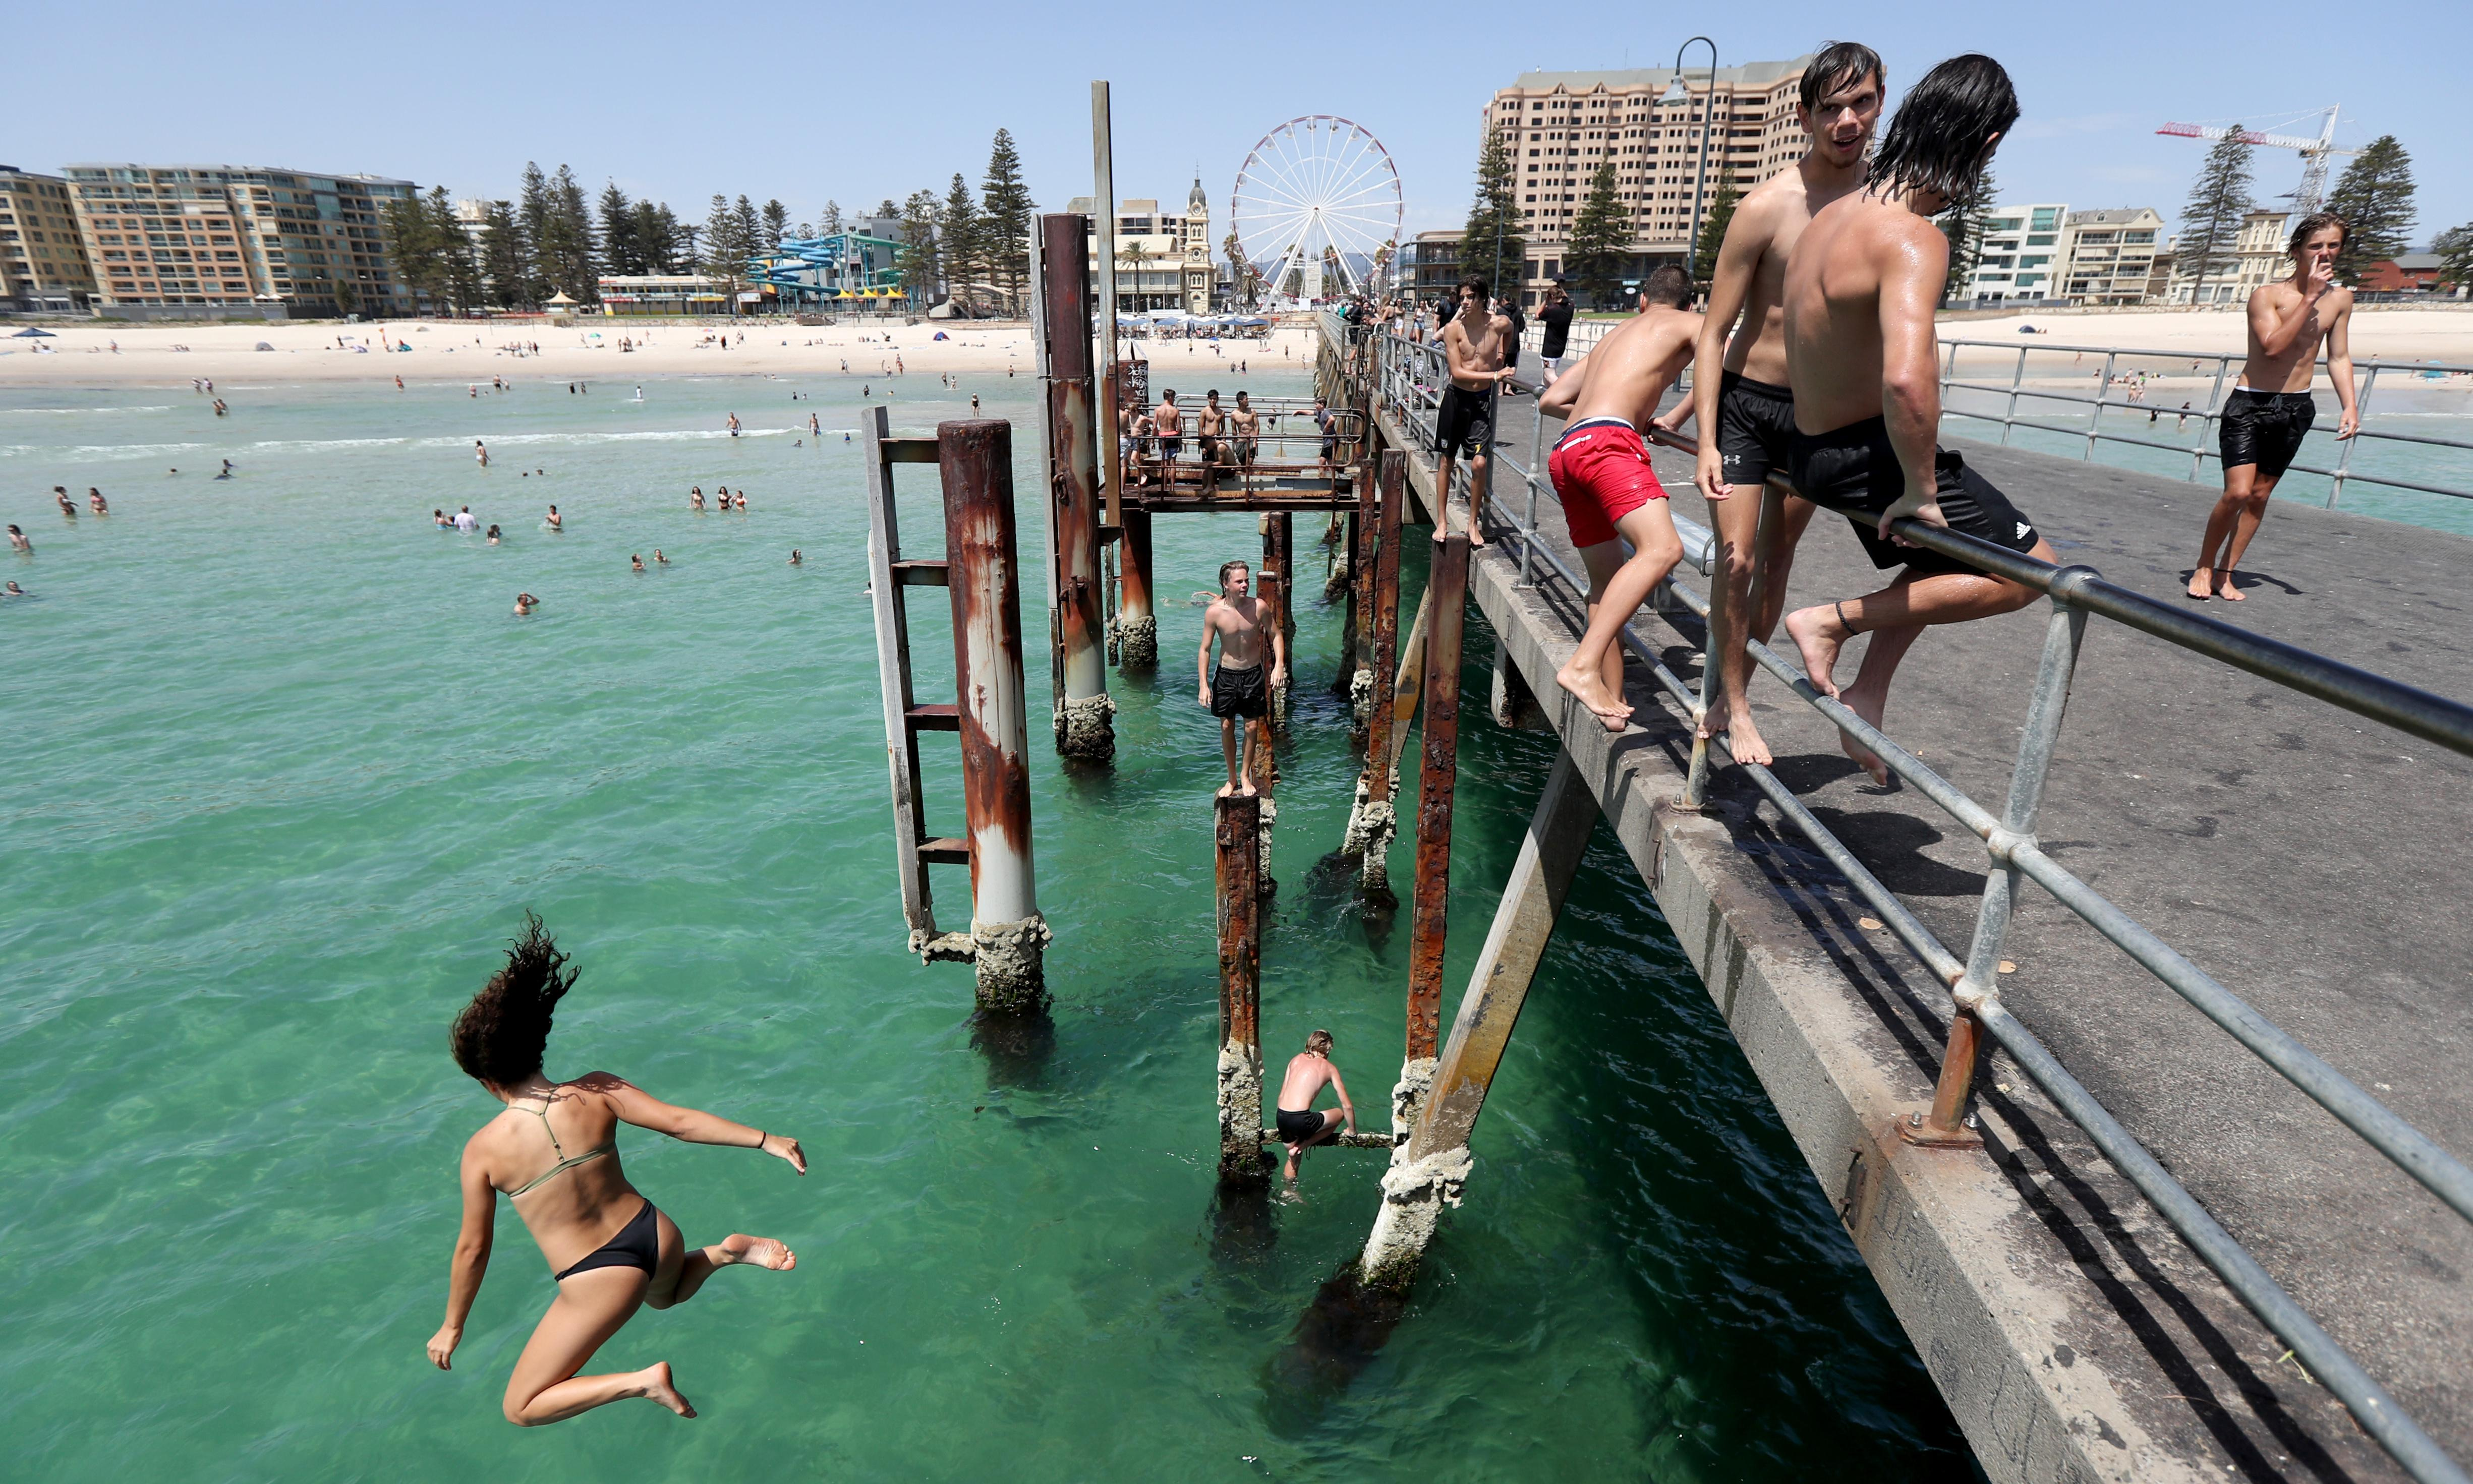 Heatwave could topple Adelaide's 80-year-old temperature record of 46.1C